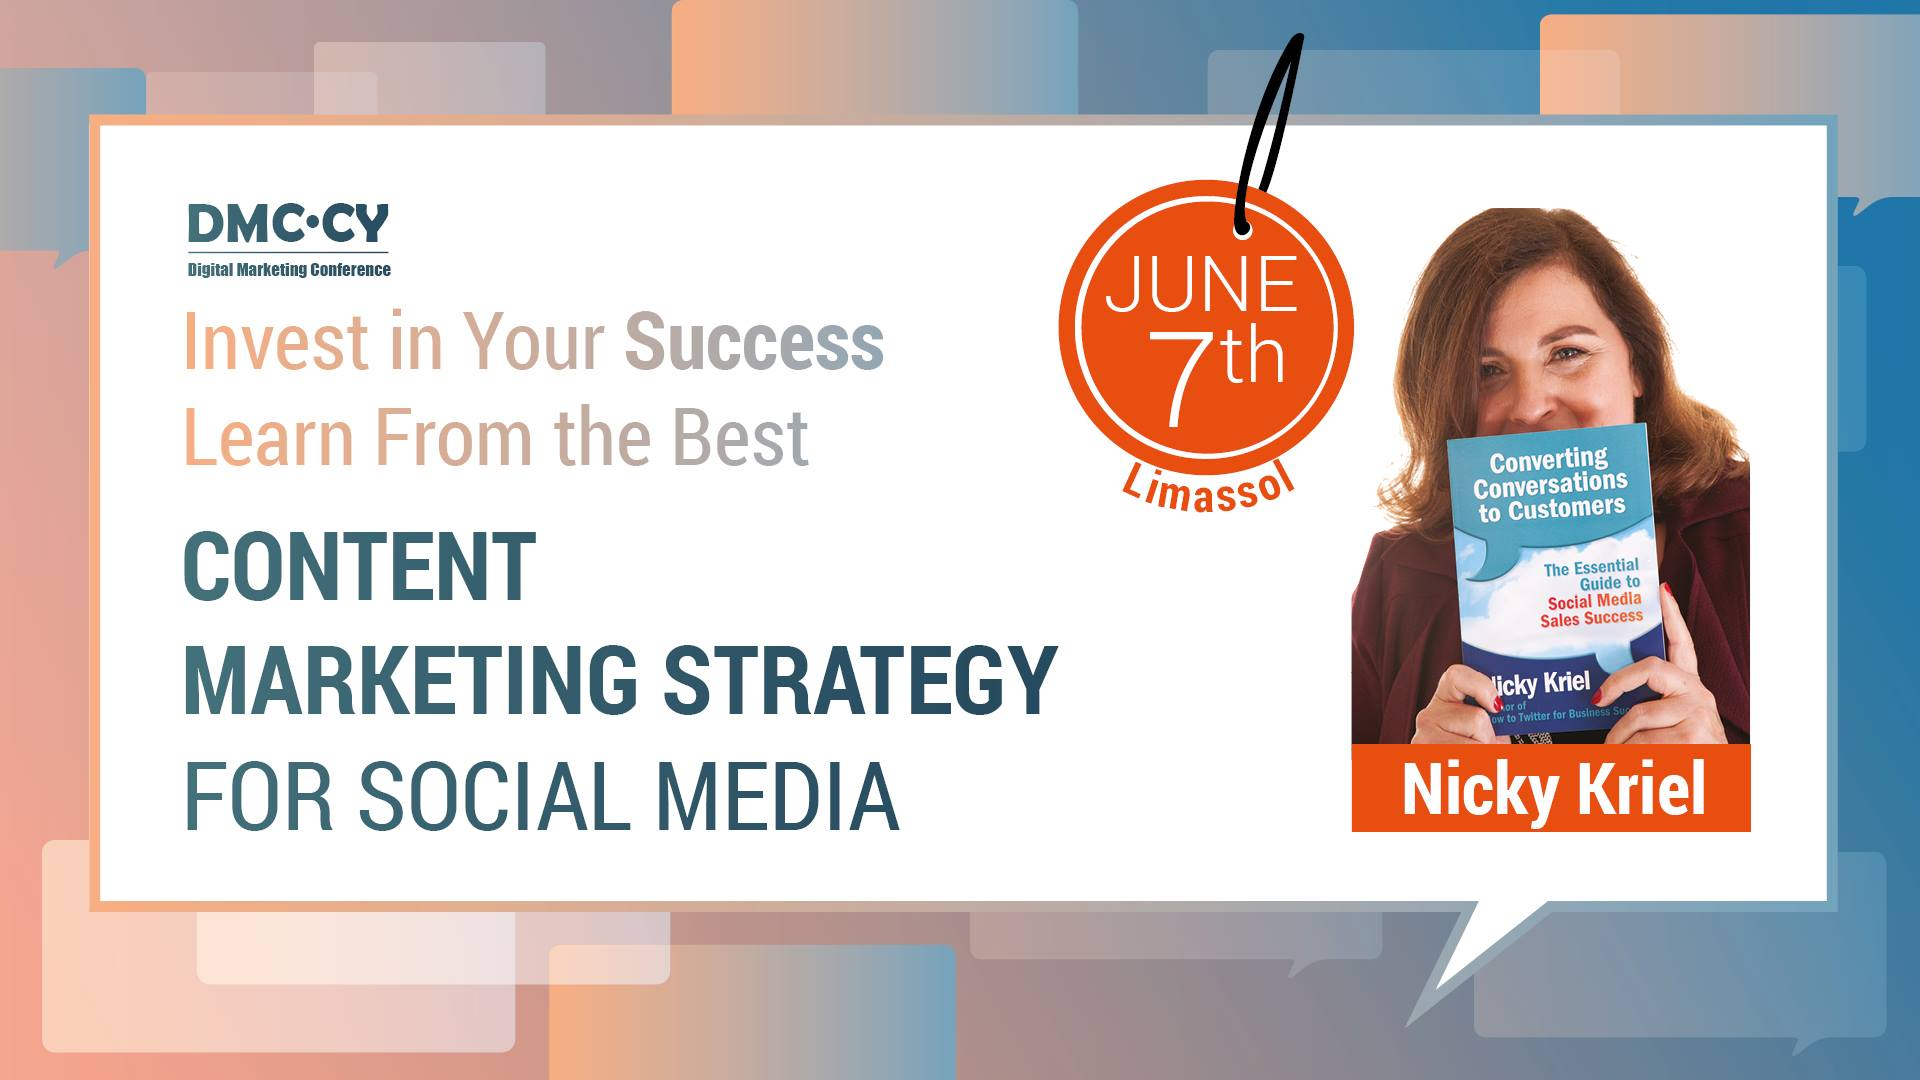 Content marketing strategy for Social media by Nicky Kriel cyprus cyprusinno event events